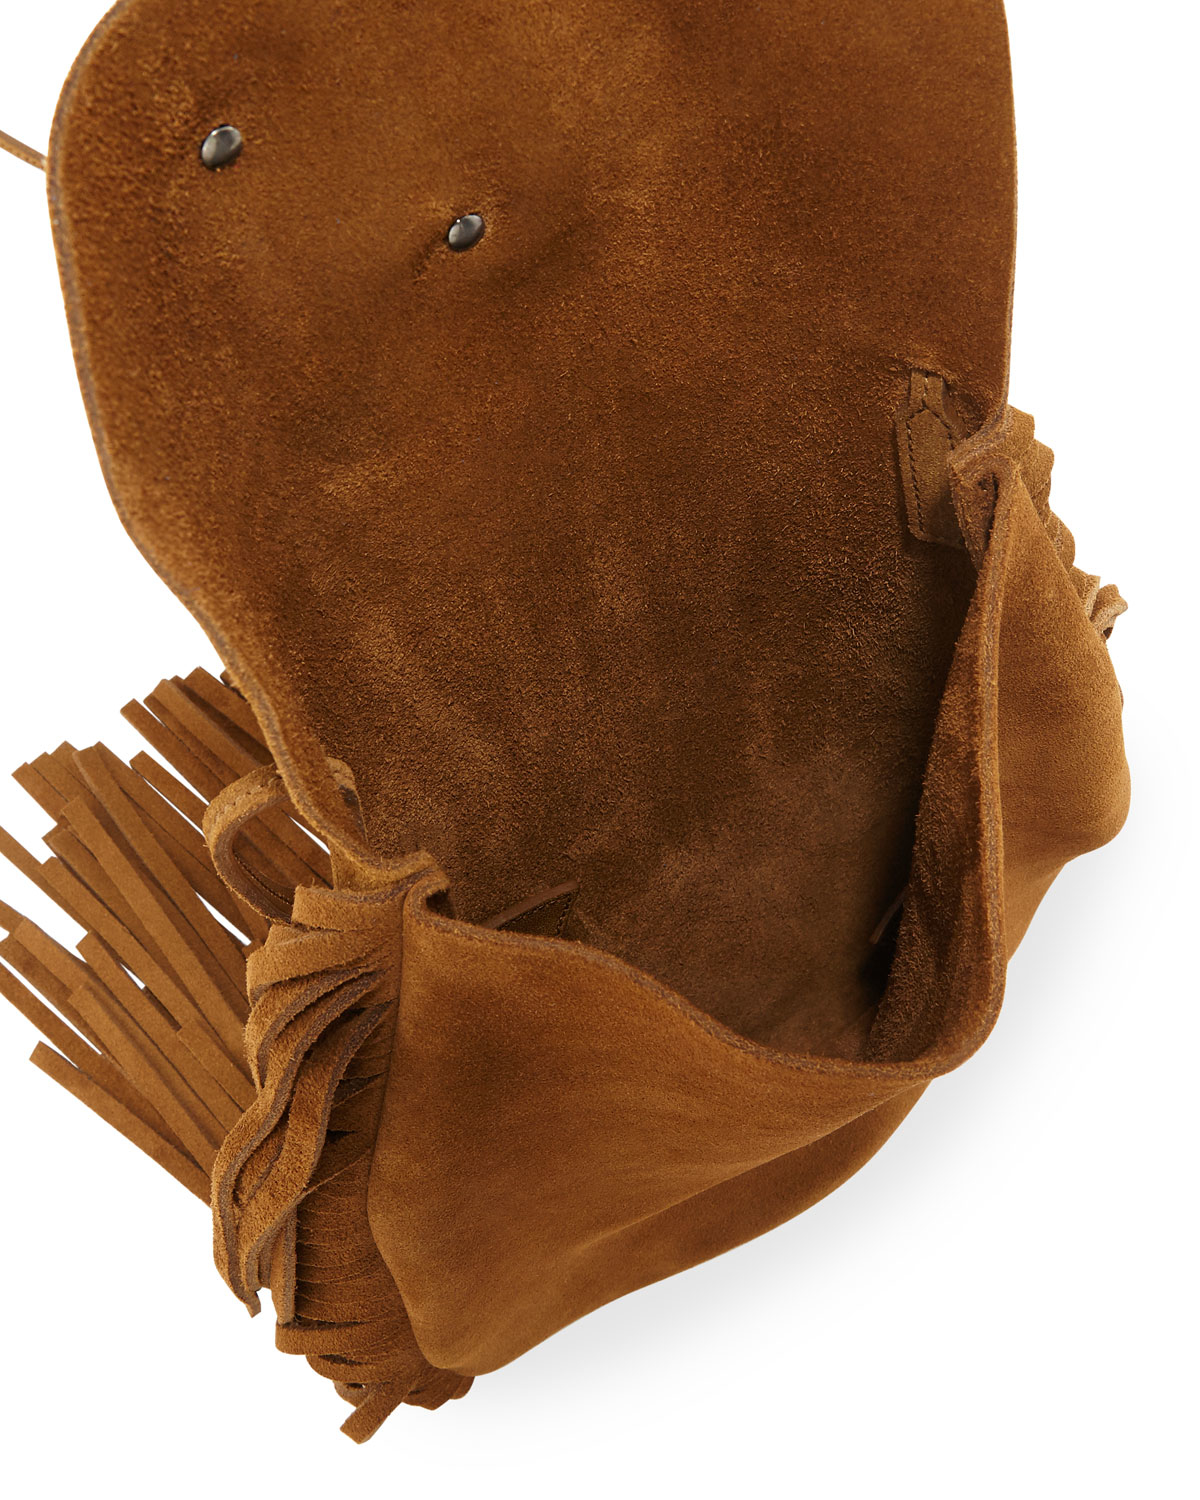 yves st laurent handbags - anita fringed flat bag in ocher suede leather